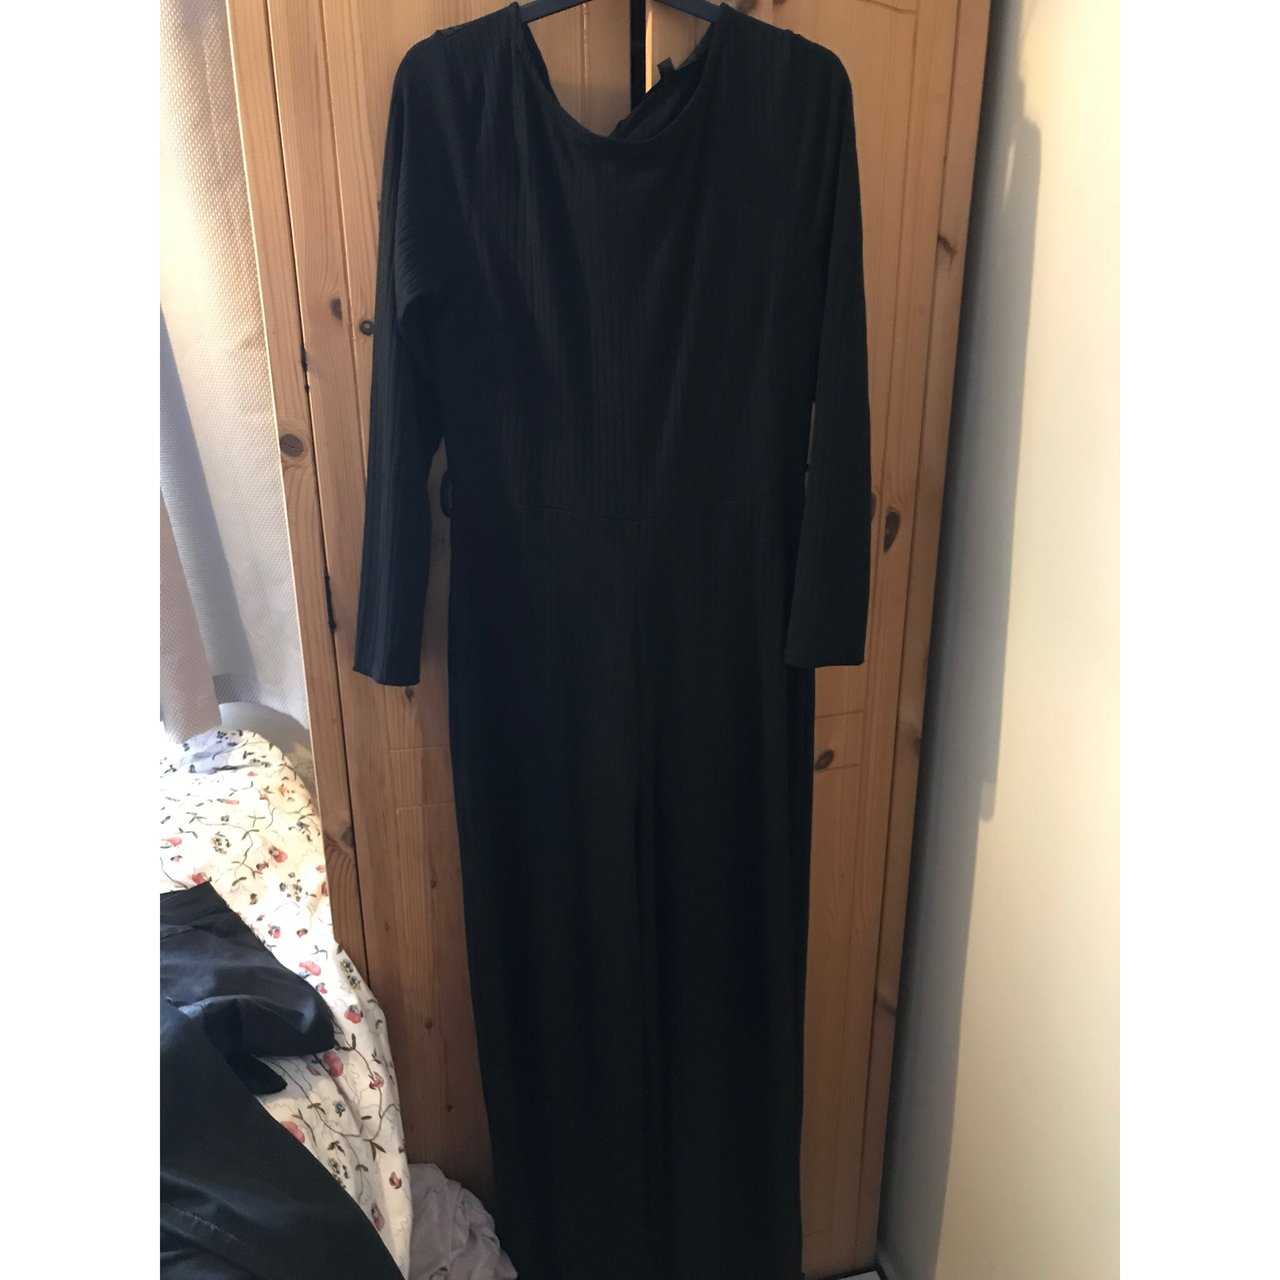 5b3c6bfb2a6 Missguided black long sleeved flared jumpsuit. Worn once. a - Depop